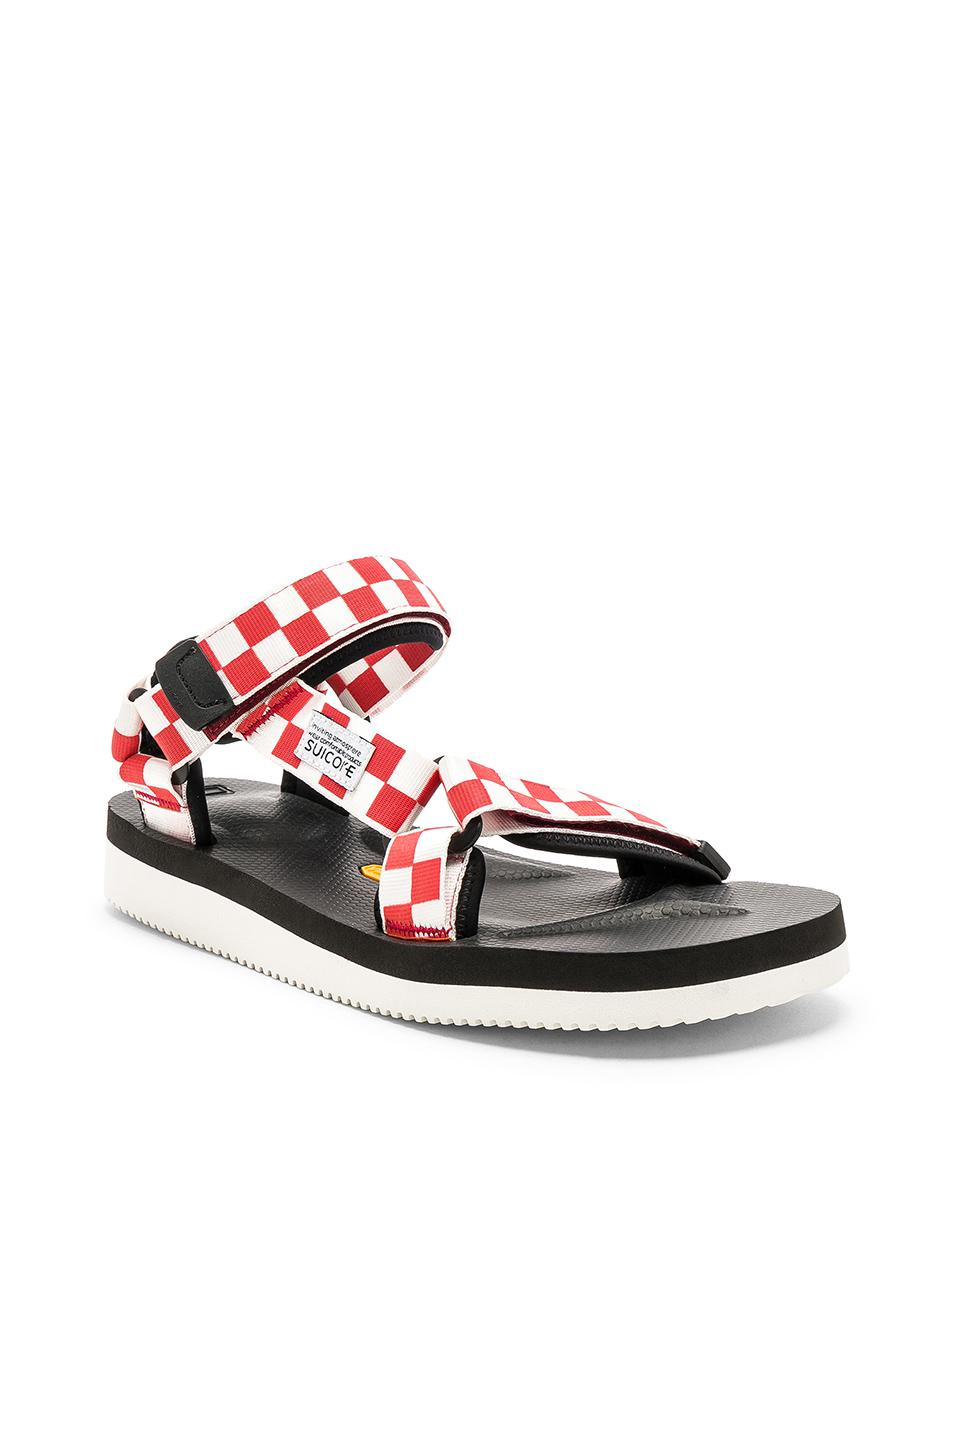 7a3e6df6a8cb Lyst - Suicoke Depa V2 Check in Red for Men